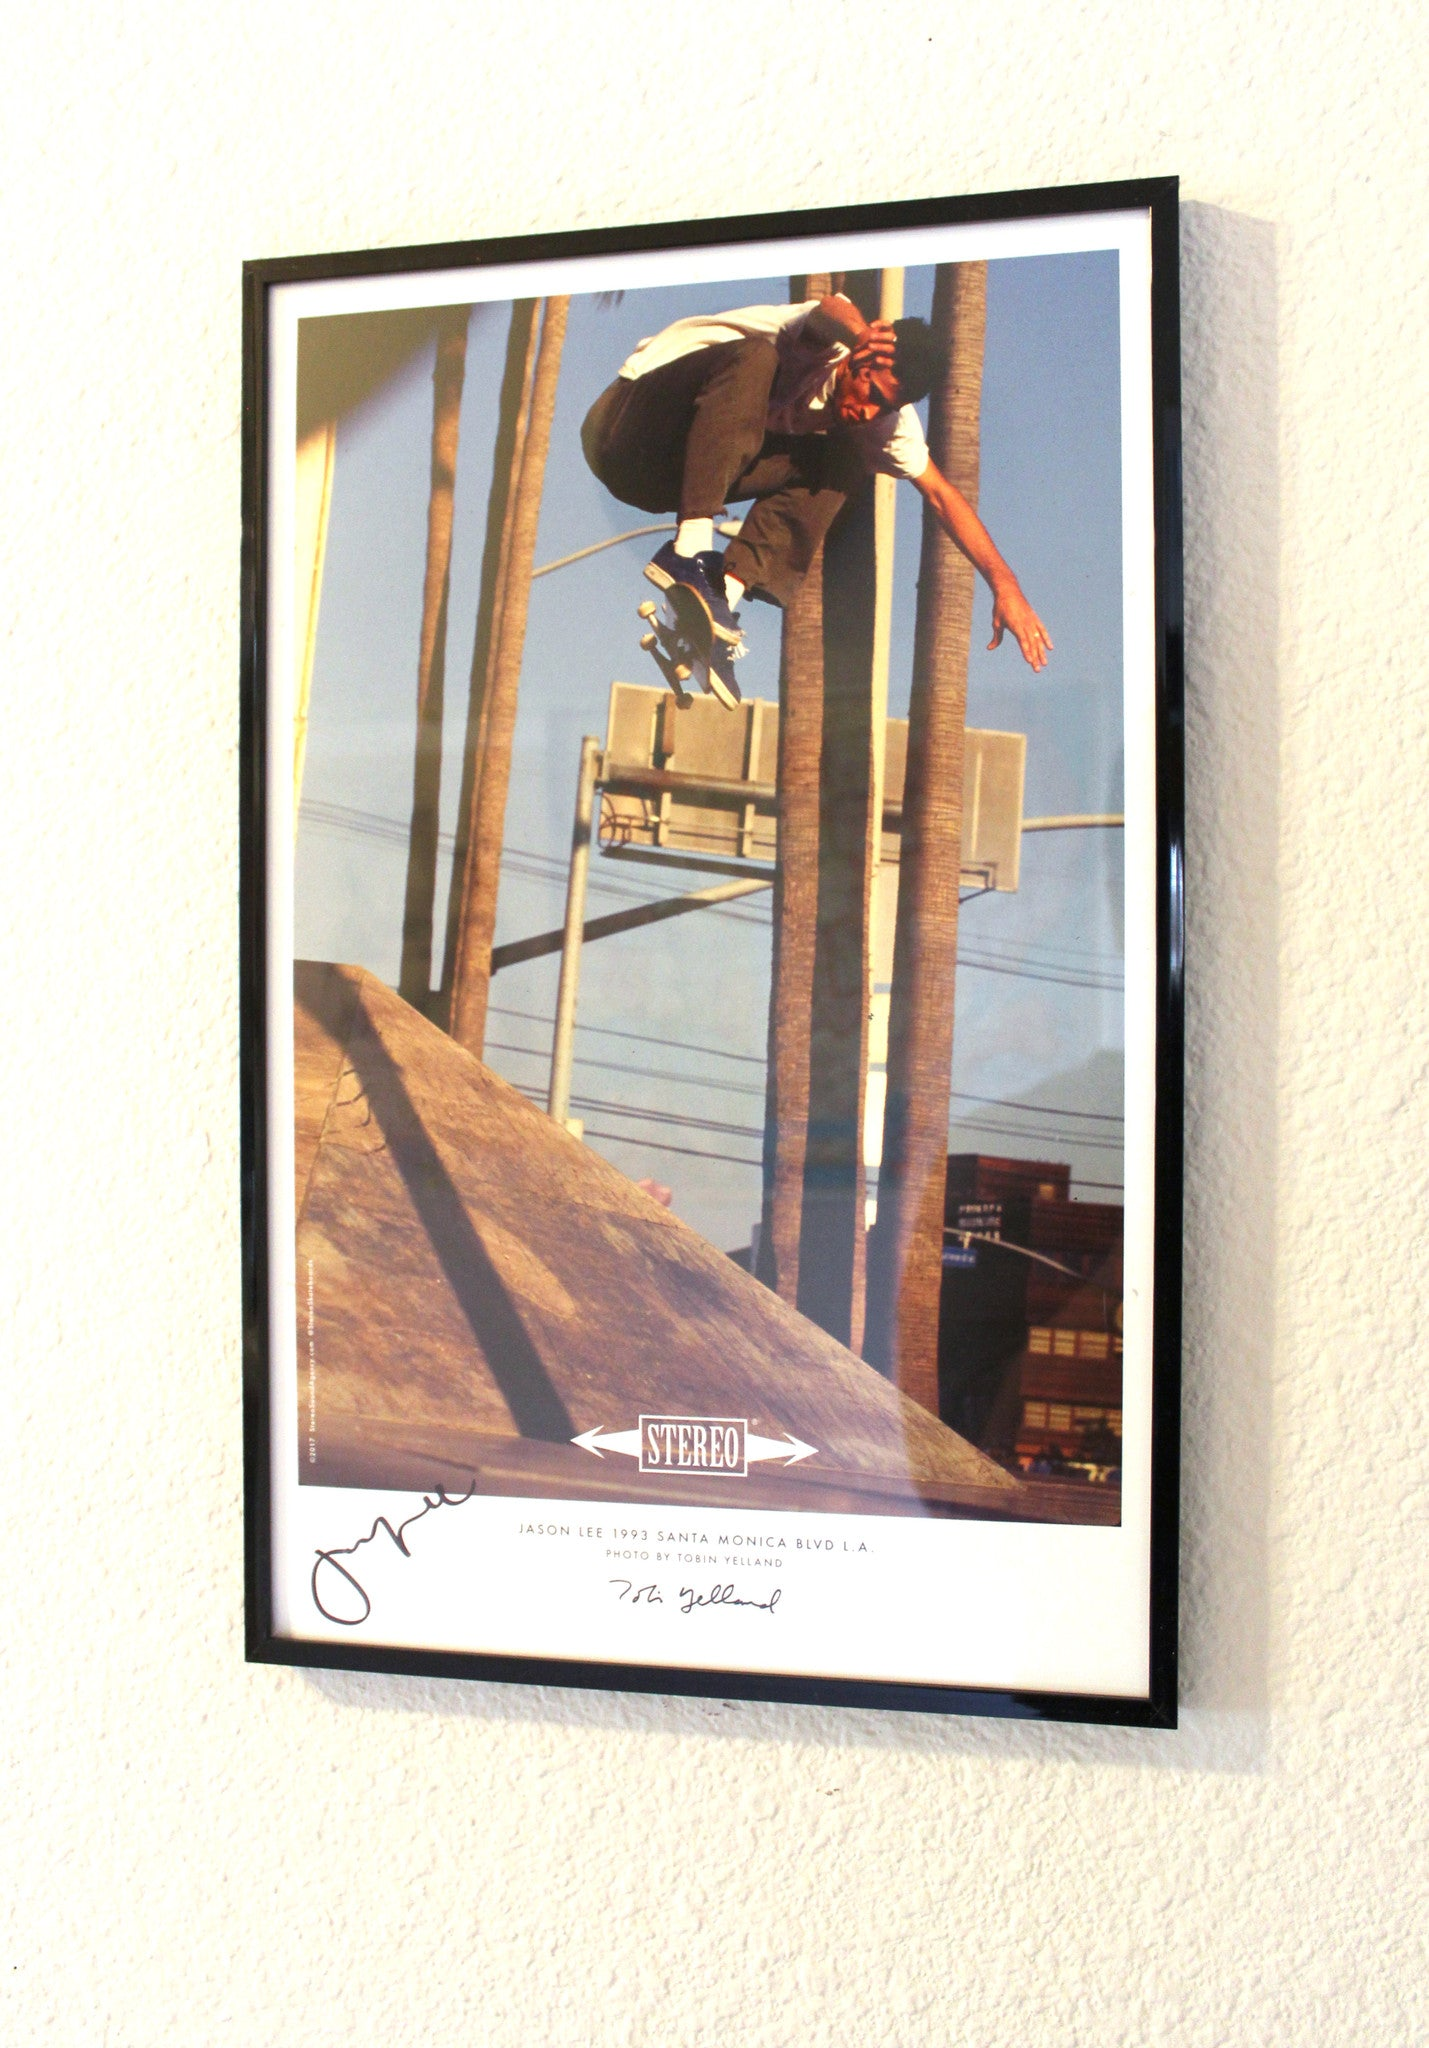 Jason Lee Signed 11x17 Print